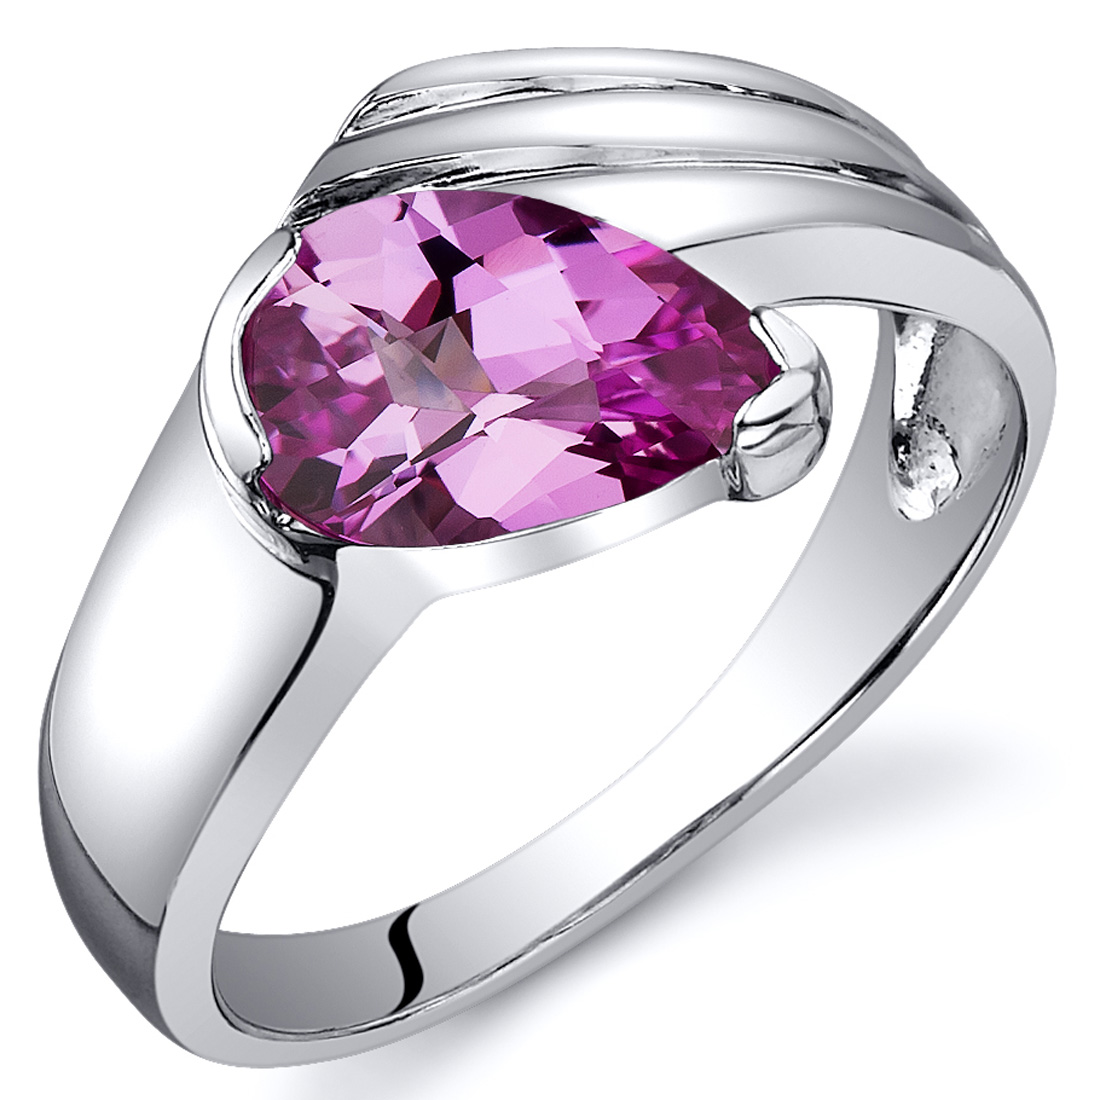 peora Contemporary Pear Shape 1.75 carats Pink Sapphire Ring in Sterling Silver Available in Sizes 5 to 9 at Sears.com